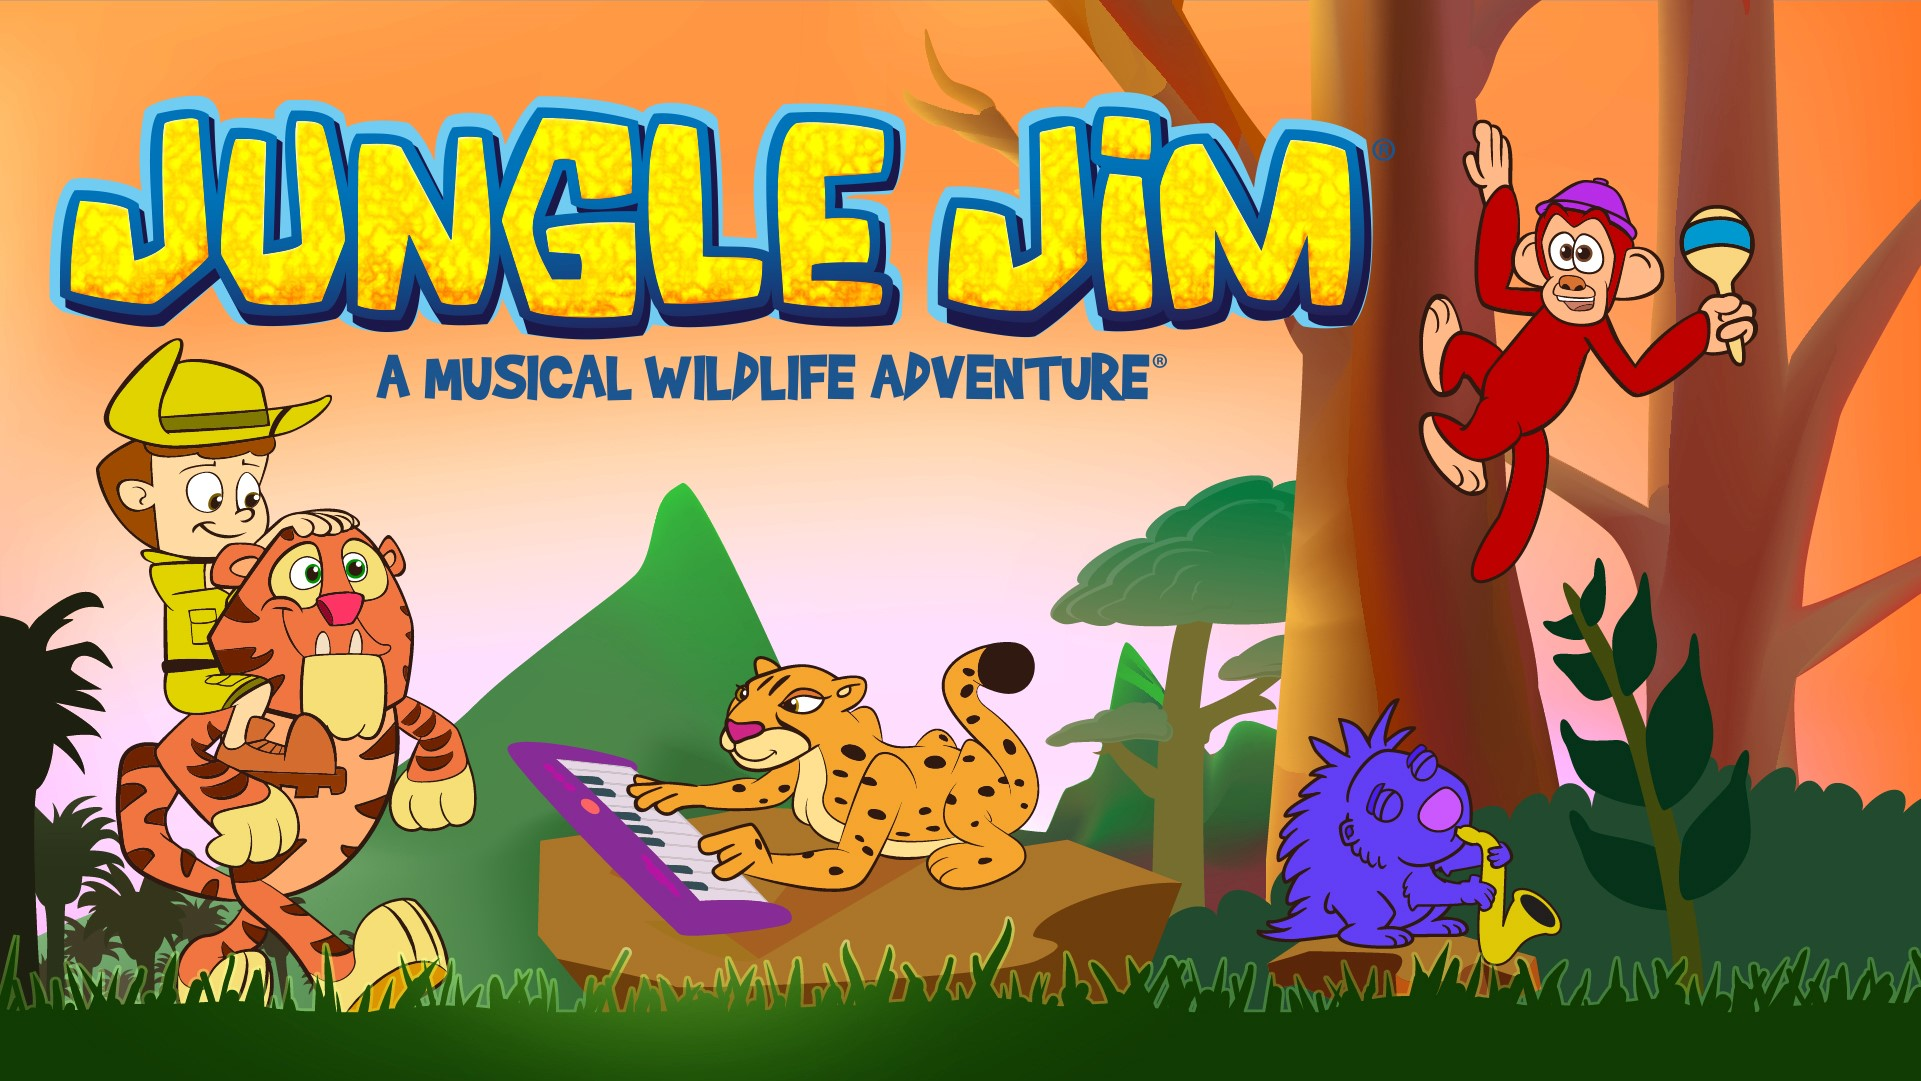 Jungle Jim - A Musical Wildlife Adventure A New Show for Preschoolers